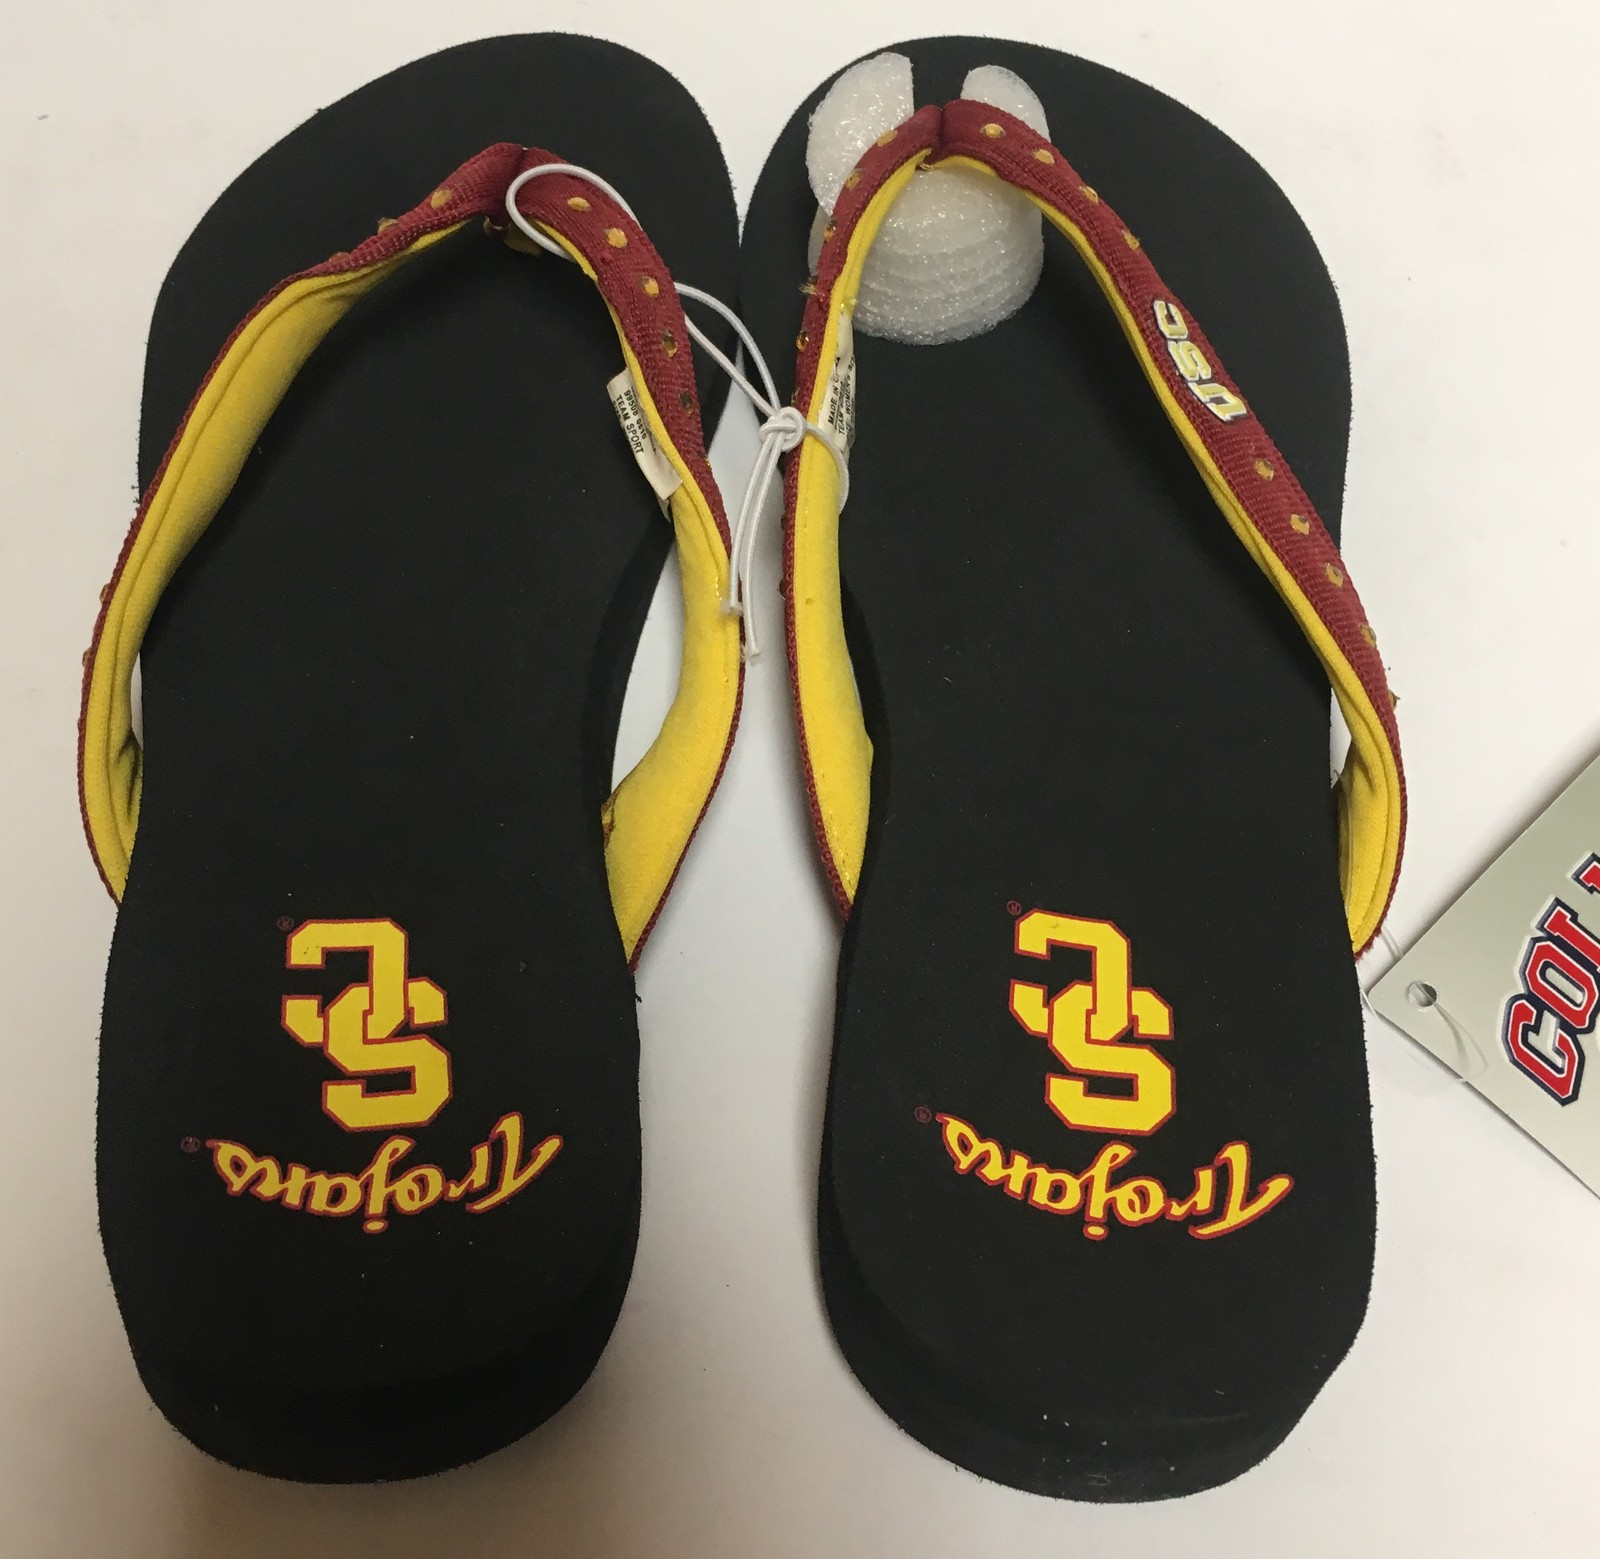 USC Southern California Trojans Women's Flip Flops Sandals Shoes Many Sizes image 3